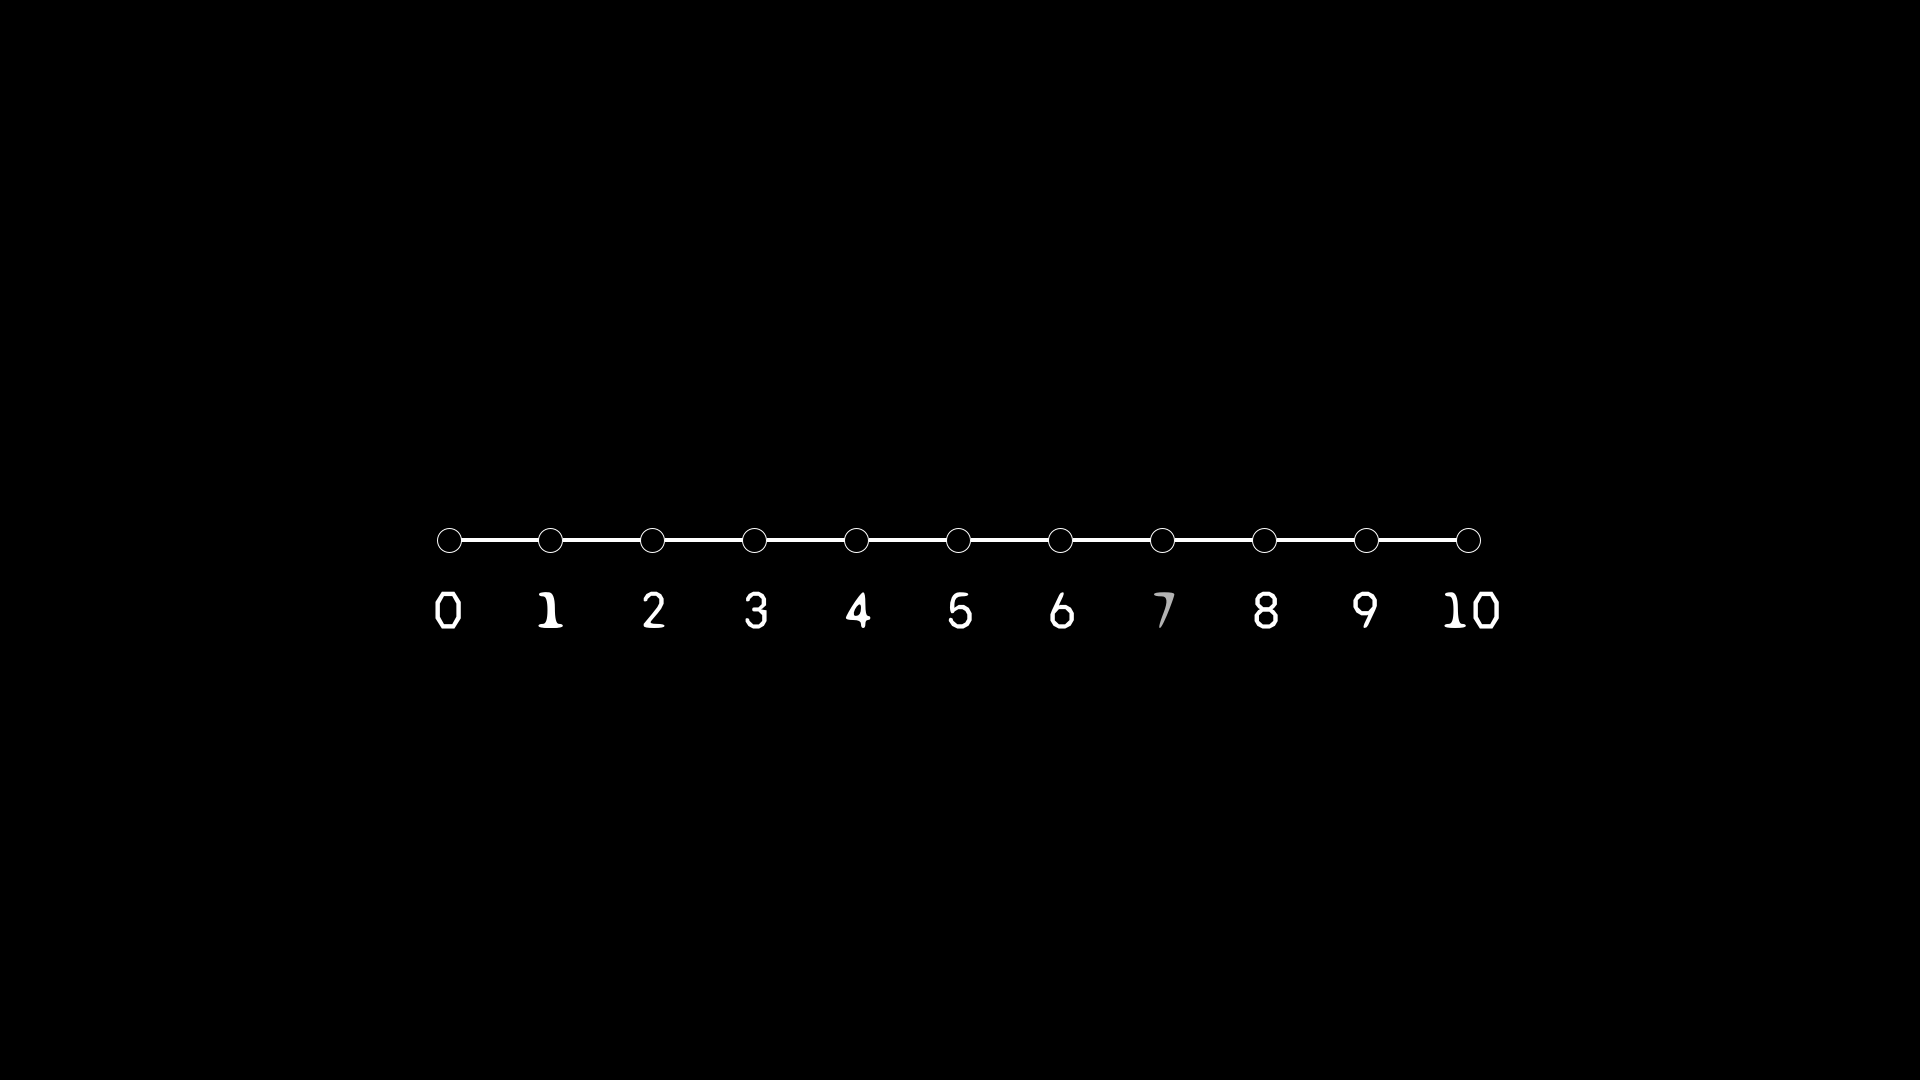 image of a scale of how close people are 1 to 10